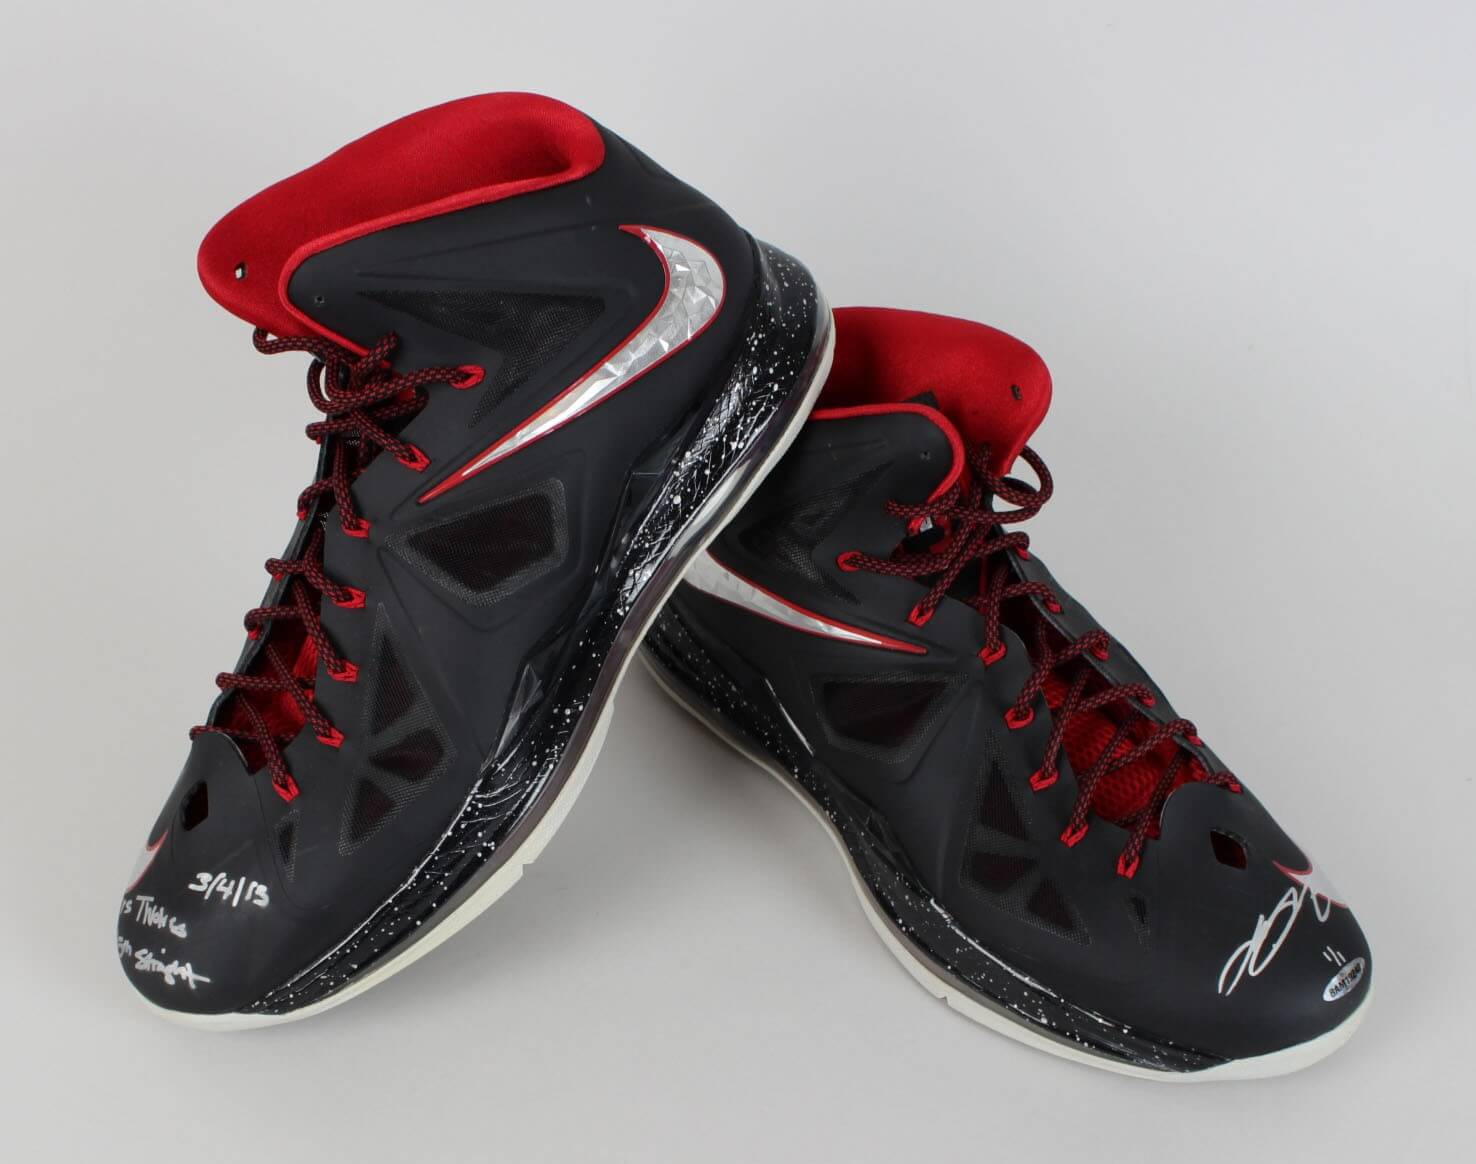 March 4, 2013 Minnesota Timberwolves vs. Miami Heat - LeBron James Game-Worn & Signed Sneakers Shoes (UDA COA)